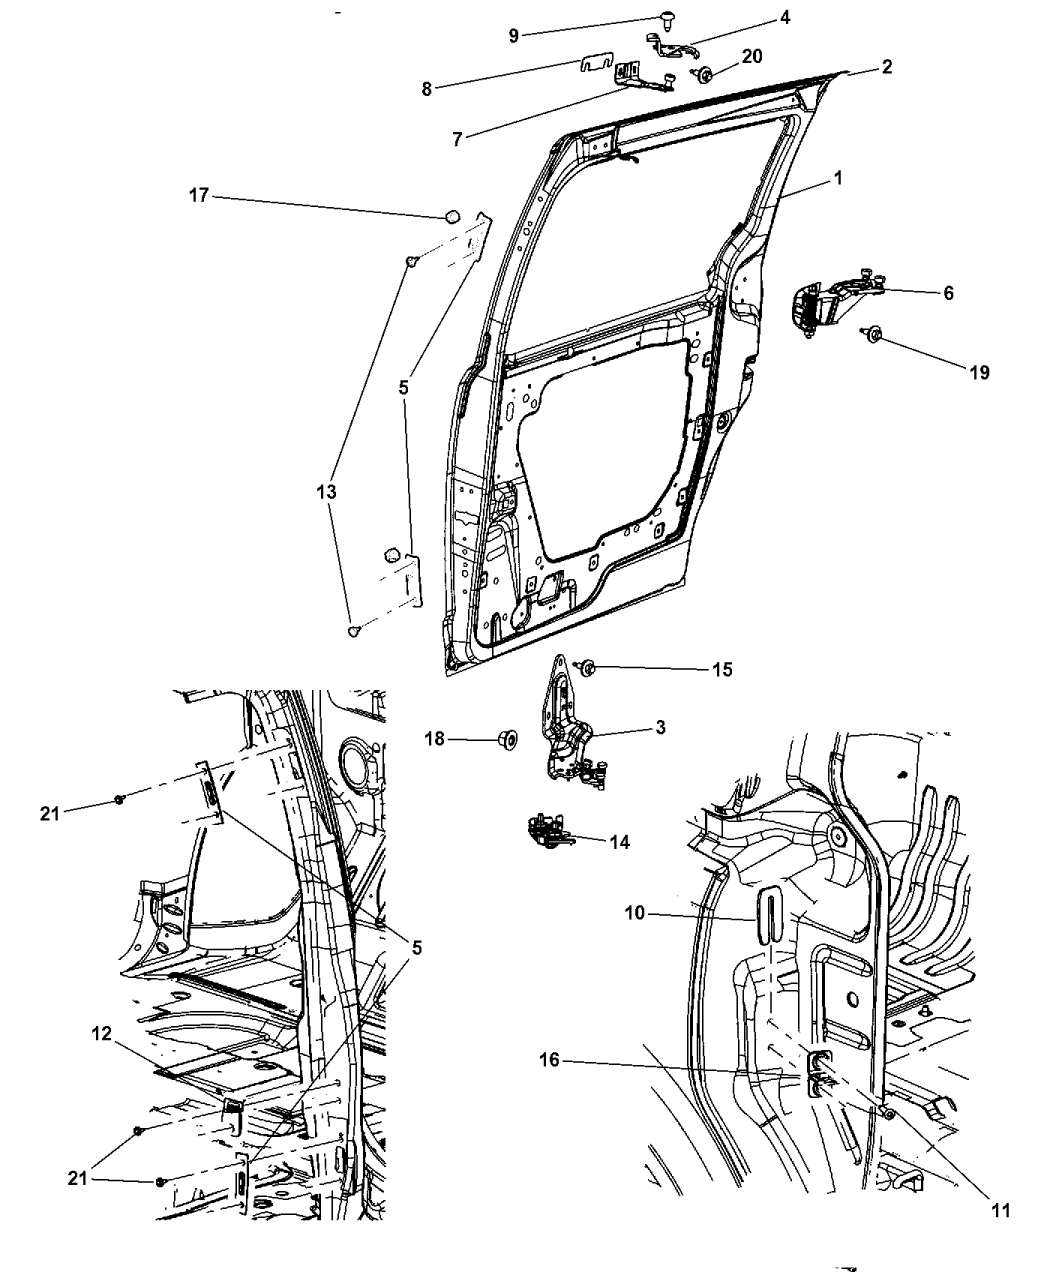 dodge grand caravan door parts diagram  u2022 wiring diagram